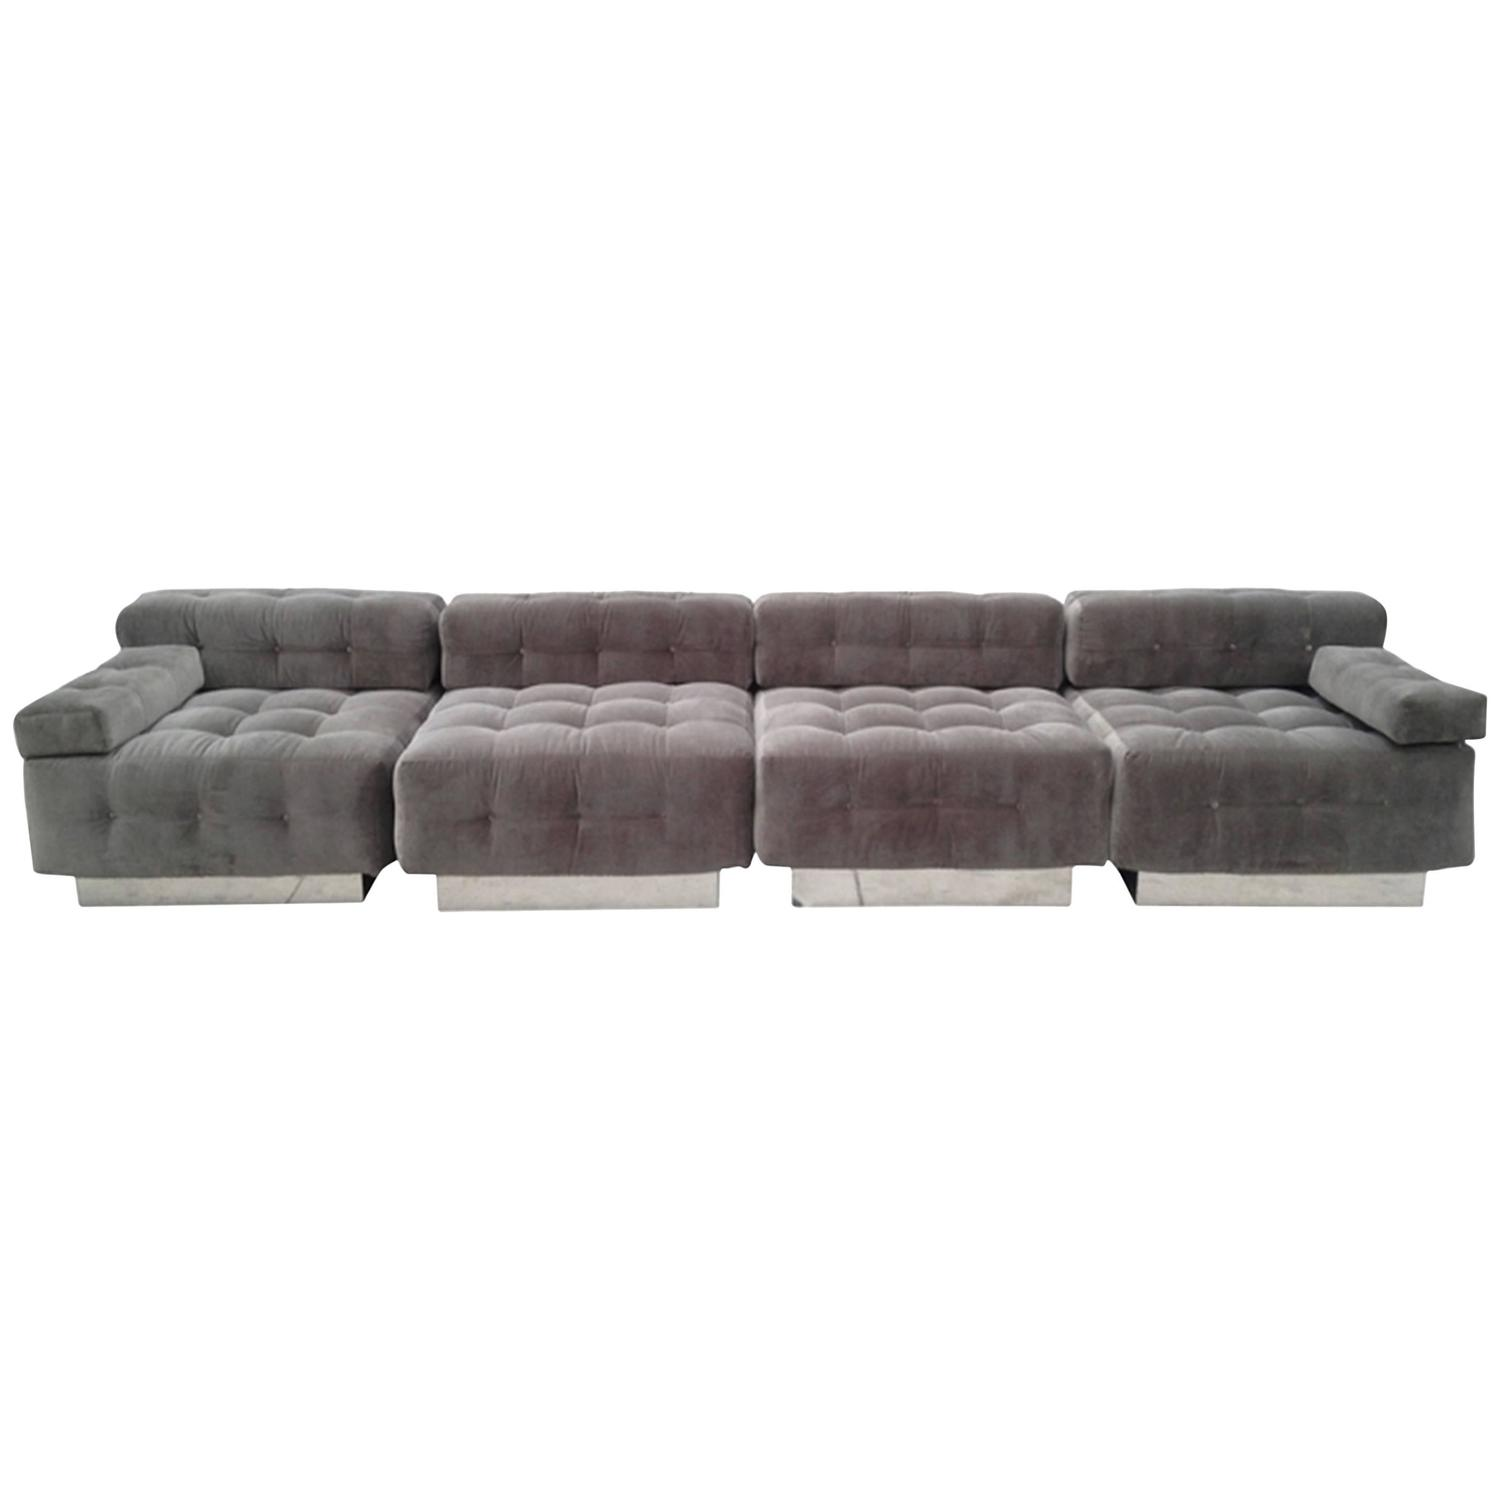 Harvey Probber Four Piece Modular Sofa For Sale At 1stdibs